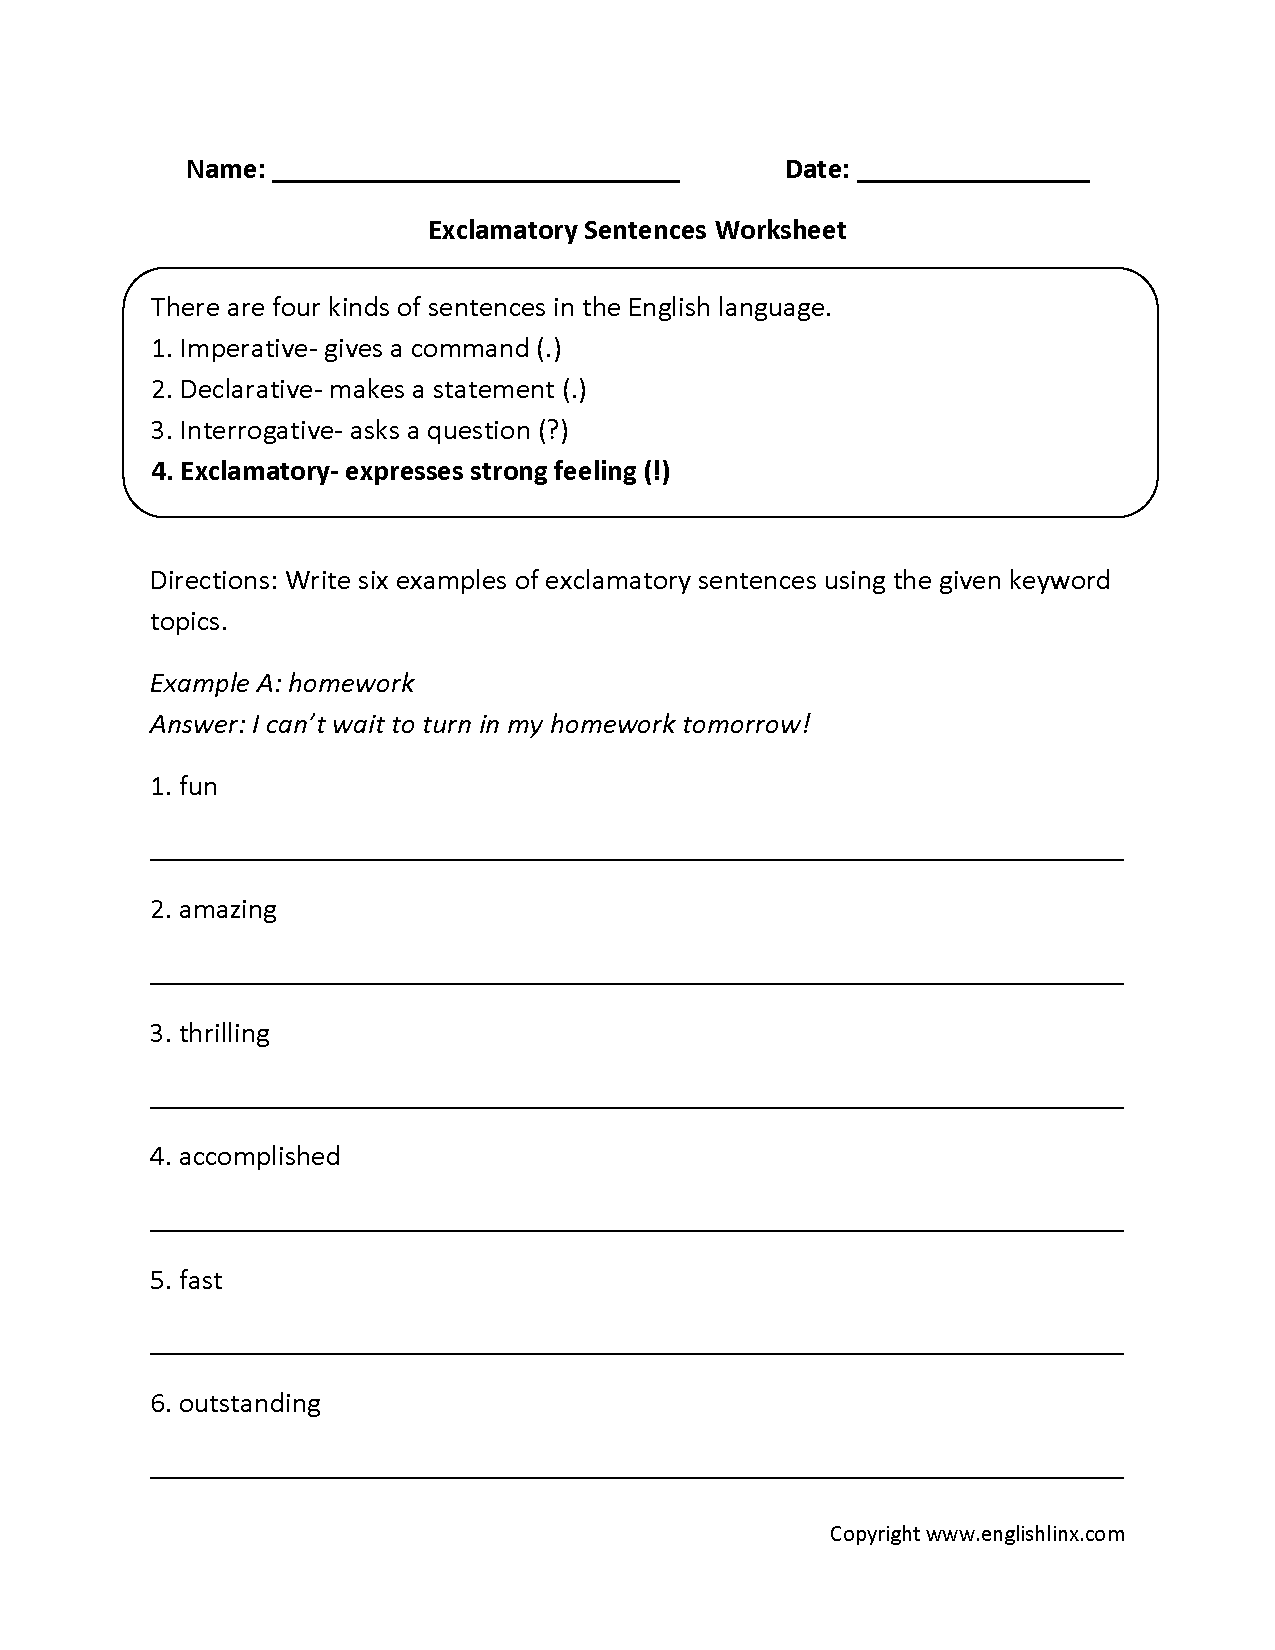 Worksheets Imperative And Exclamatory Sentences Worksheet sentences worksheets types of exclamatory worksheets